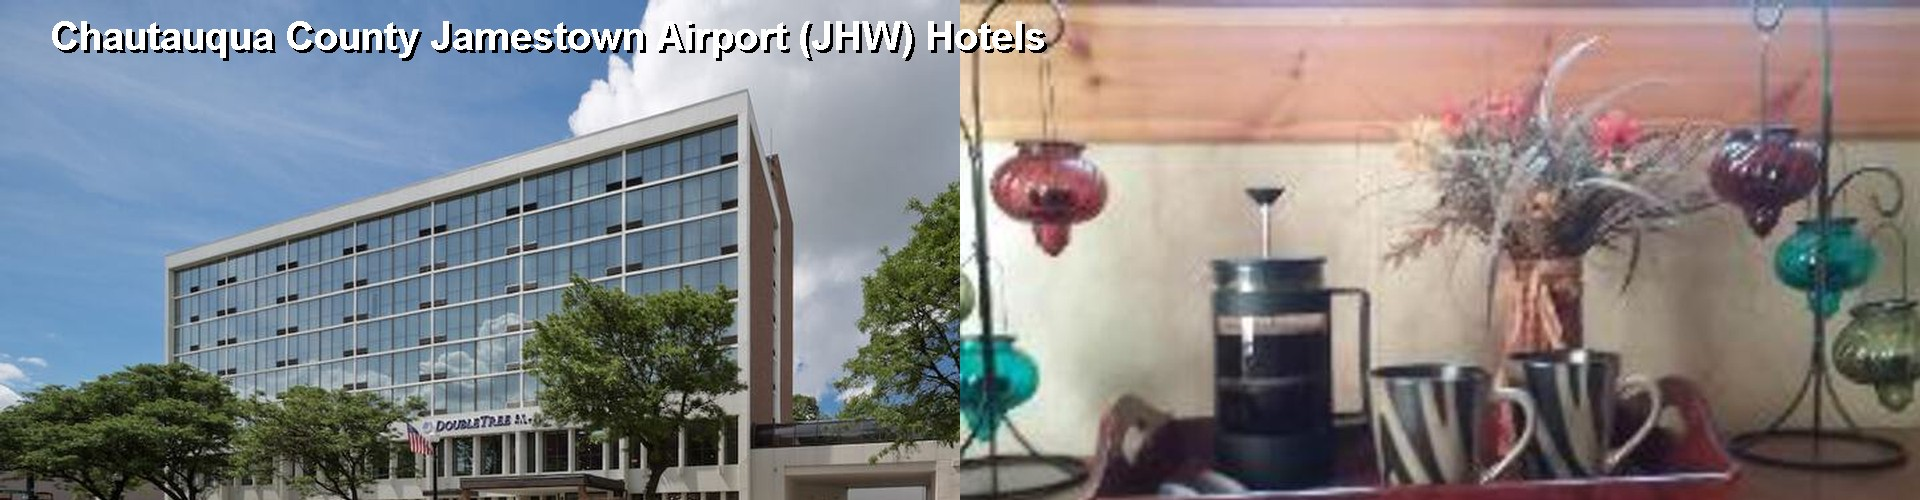 5 Best Hotels near Chautauqua County Jamestown Airport (JHW)